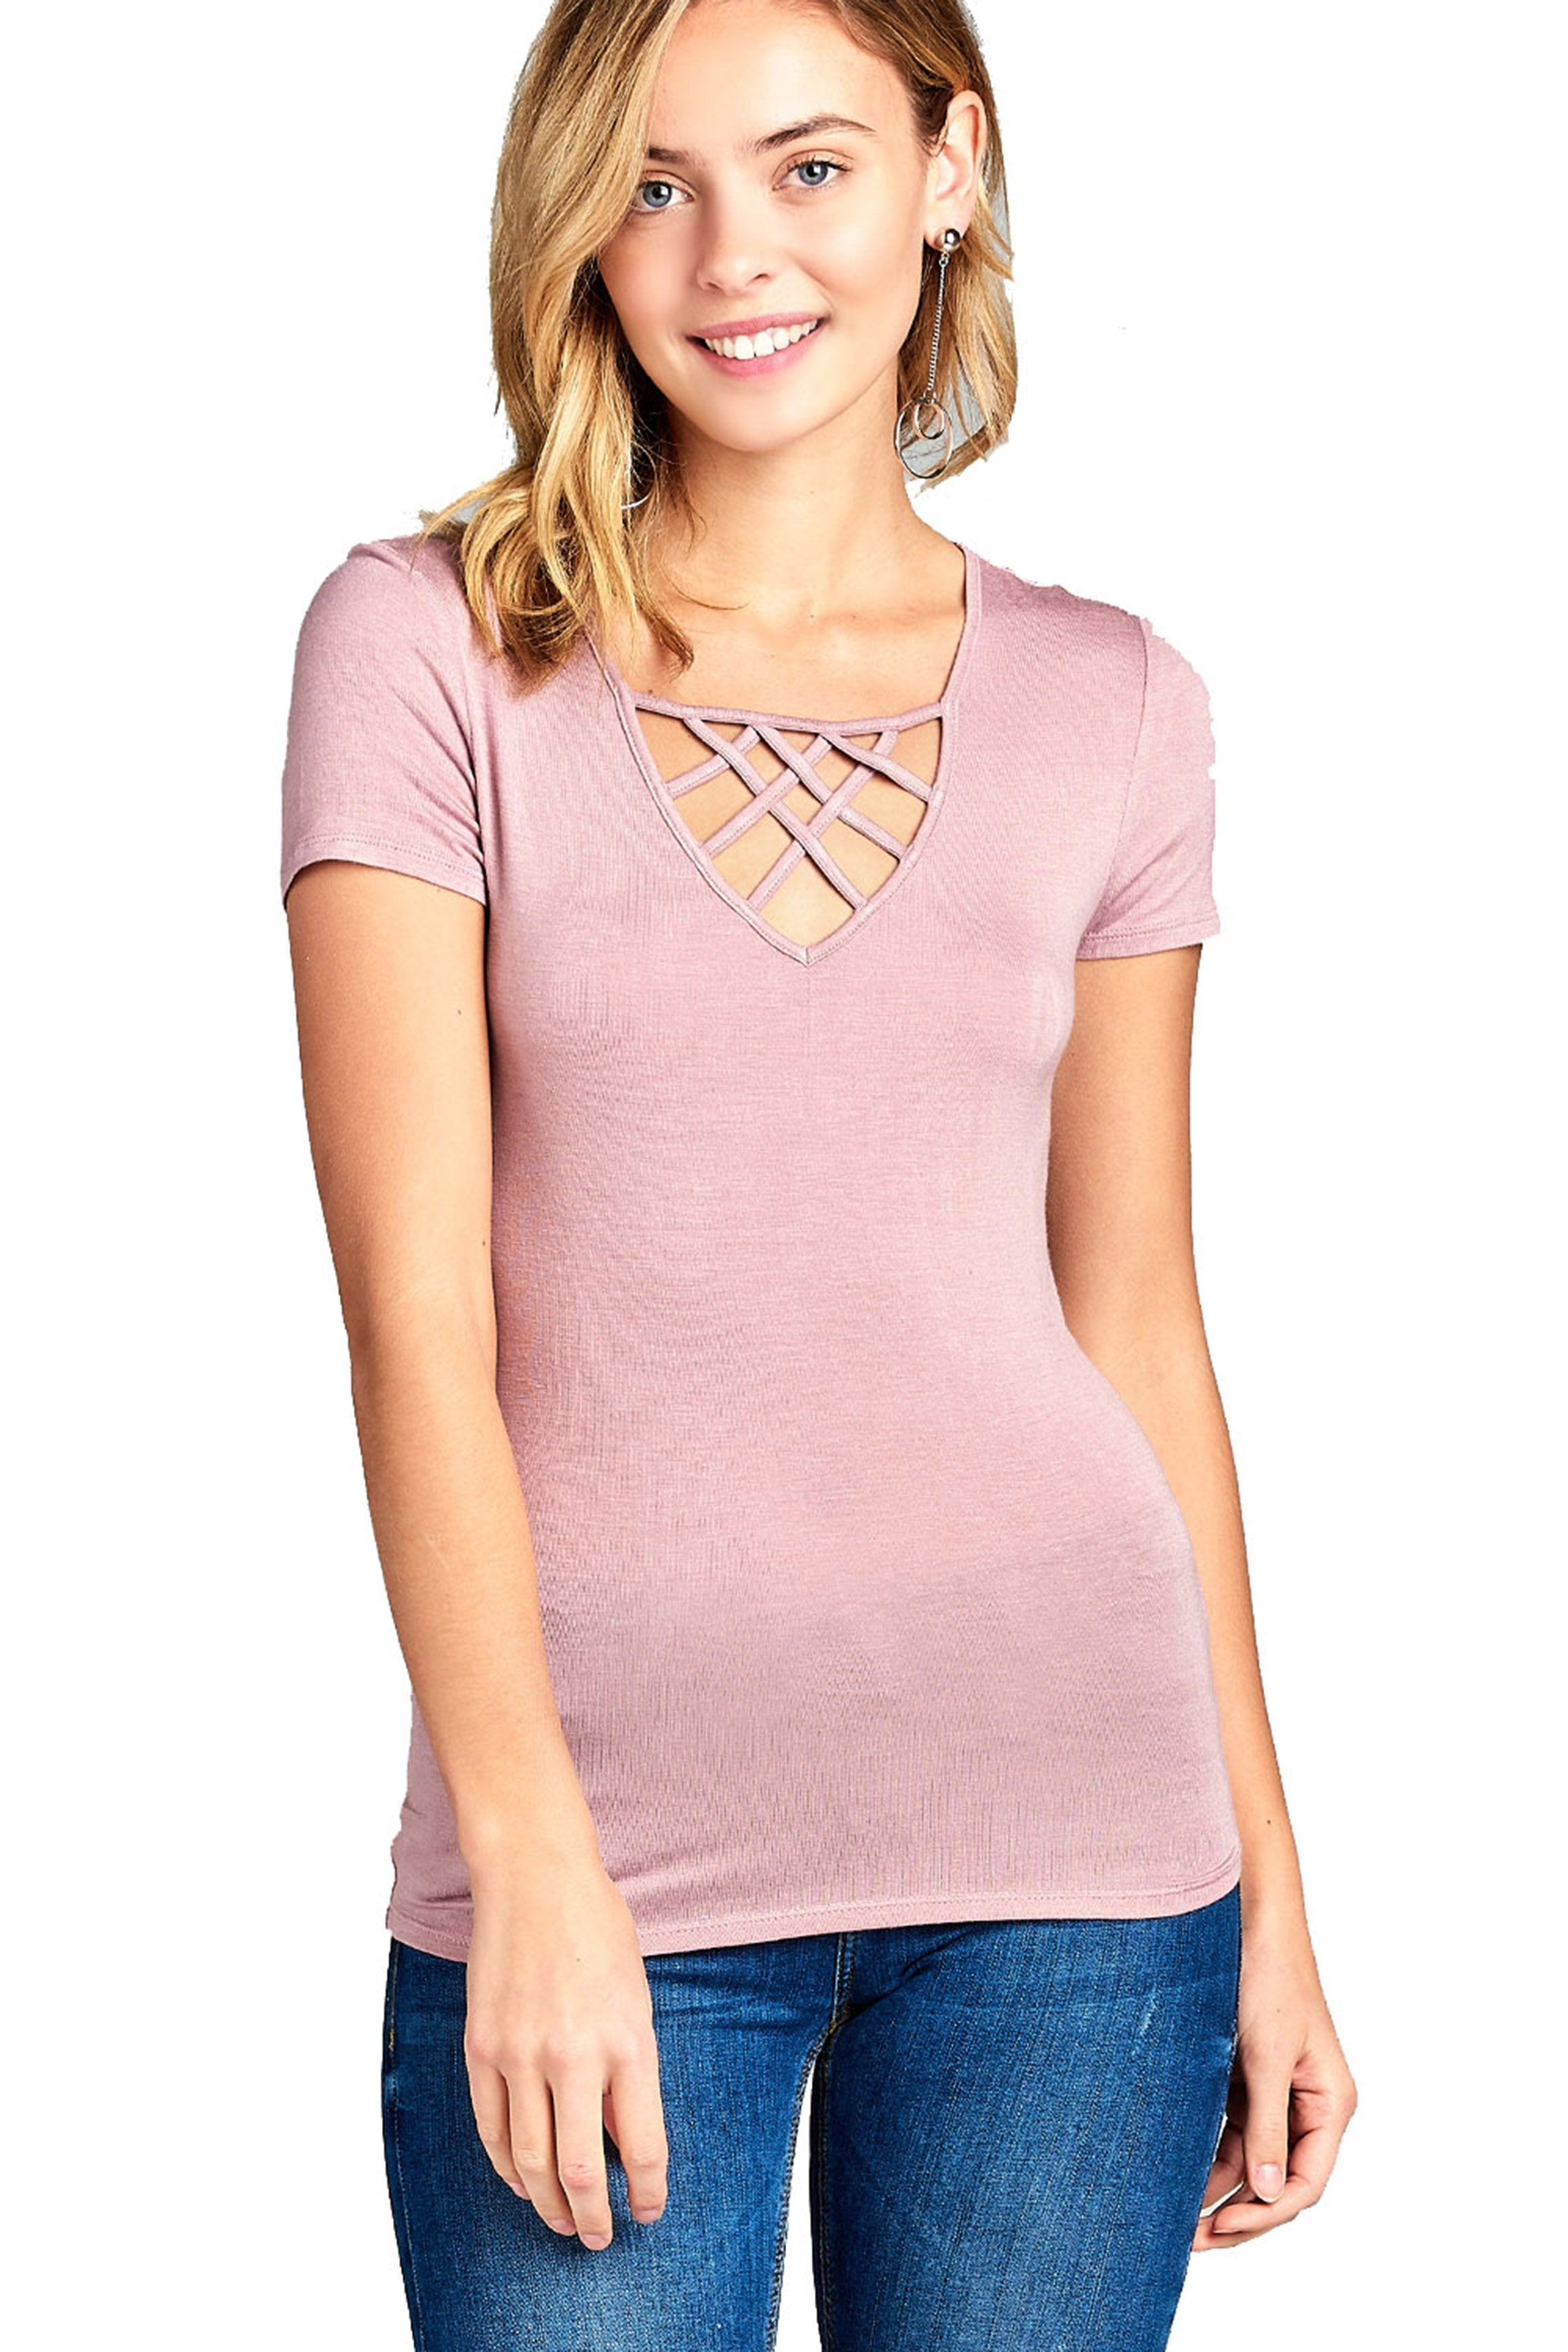 Short Sleeve Basic Casual Crisscross Strappy V-Neck Fitted Top